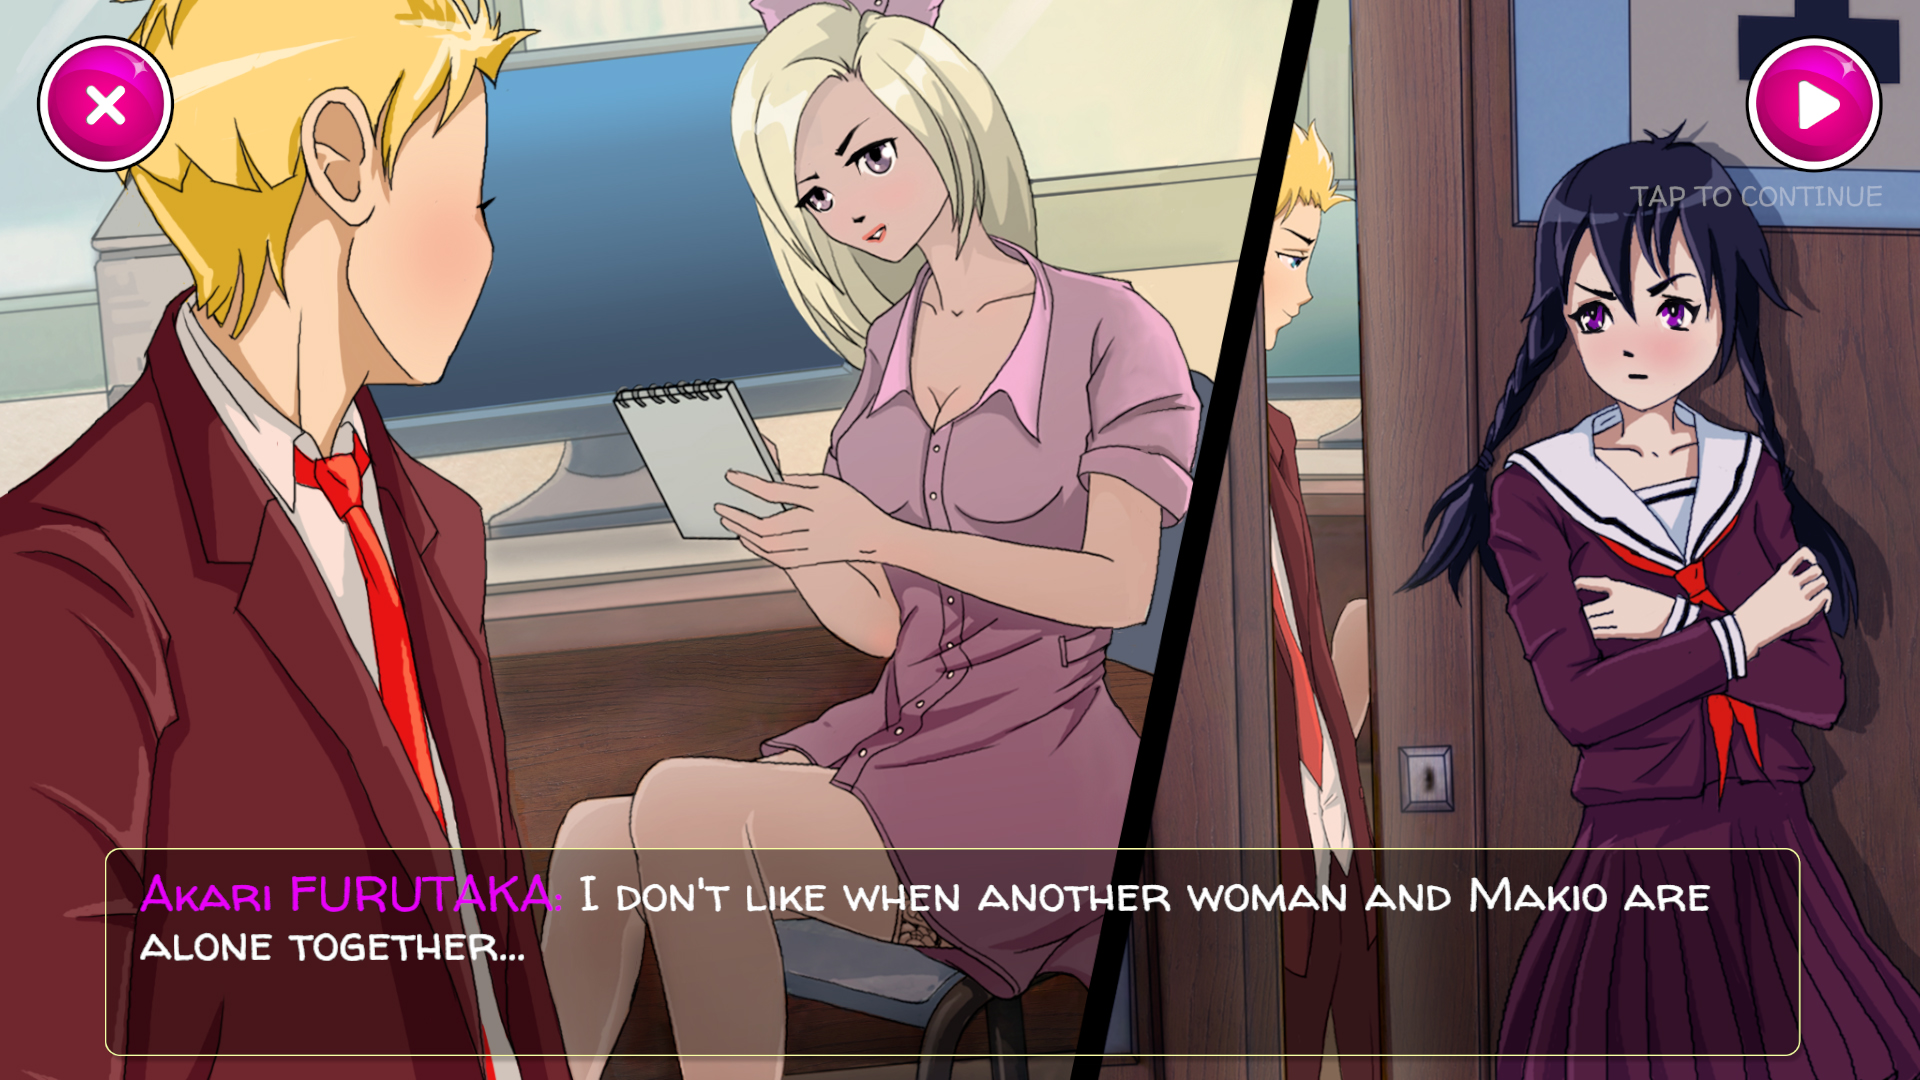 flirting games anime games without downloads 2017